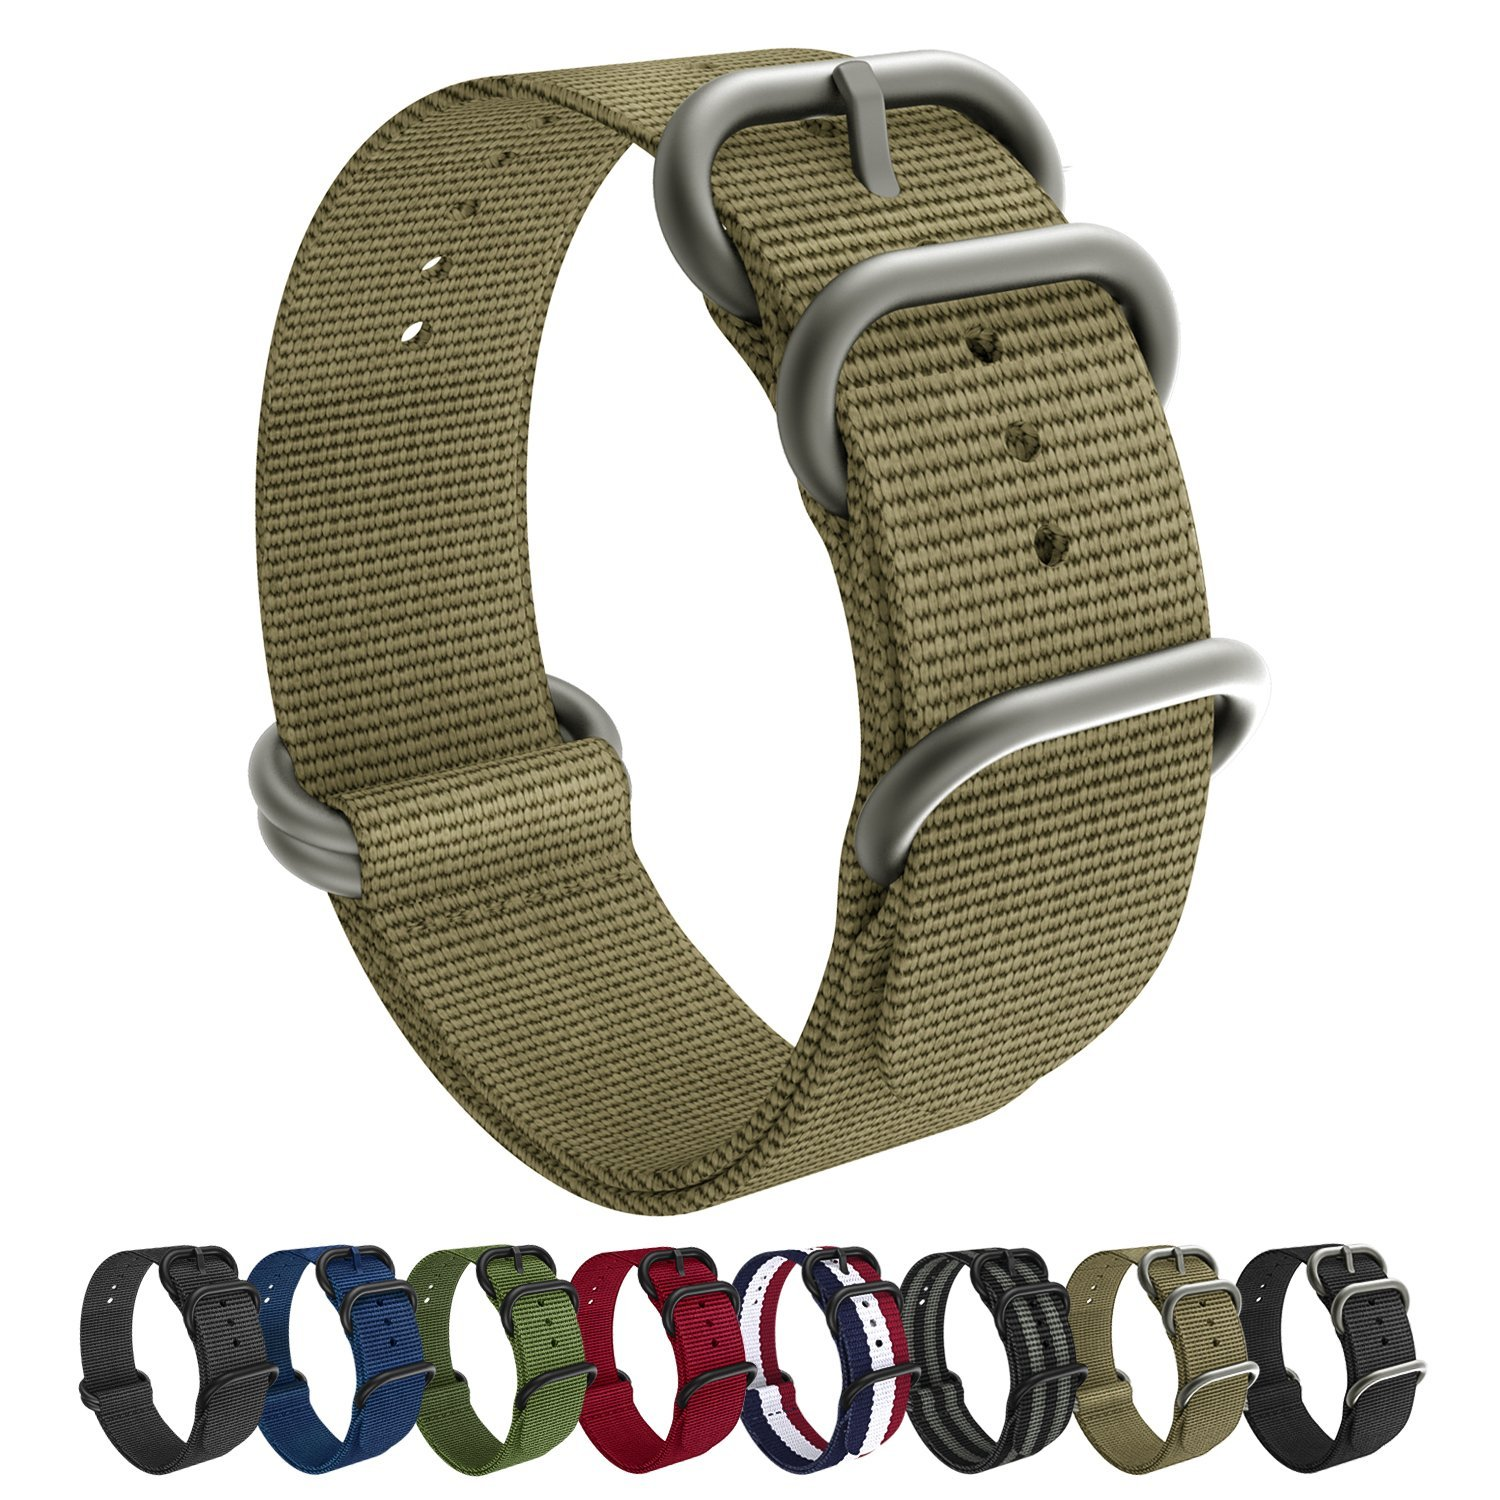 Emibele 20mm Universal Watch Band, Fine Woven Nylon with Stainless ...